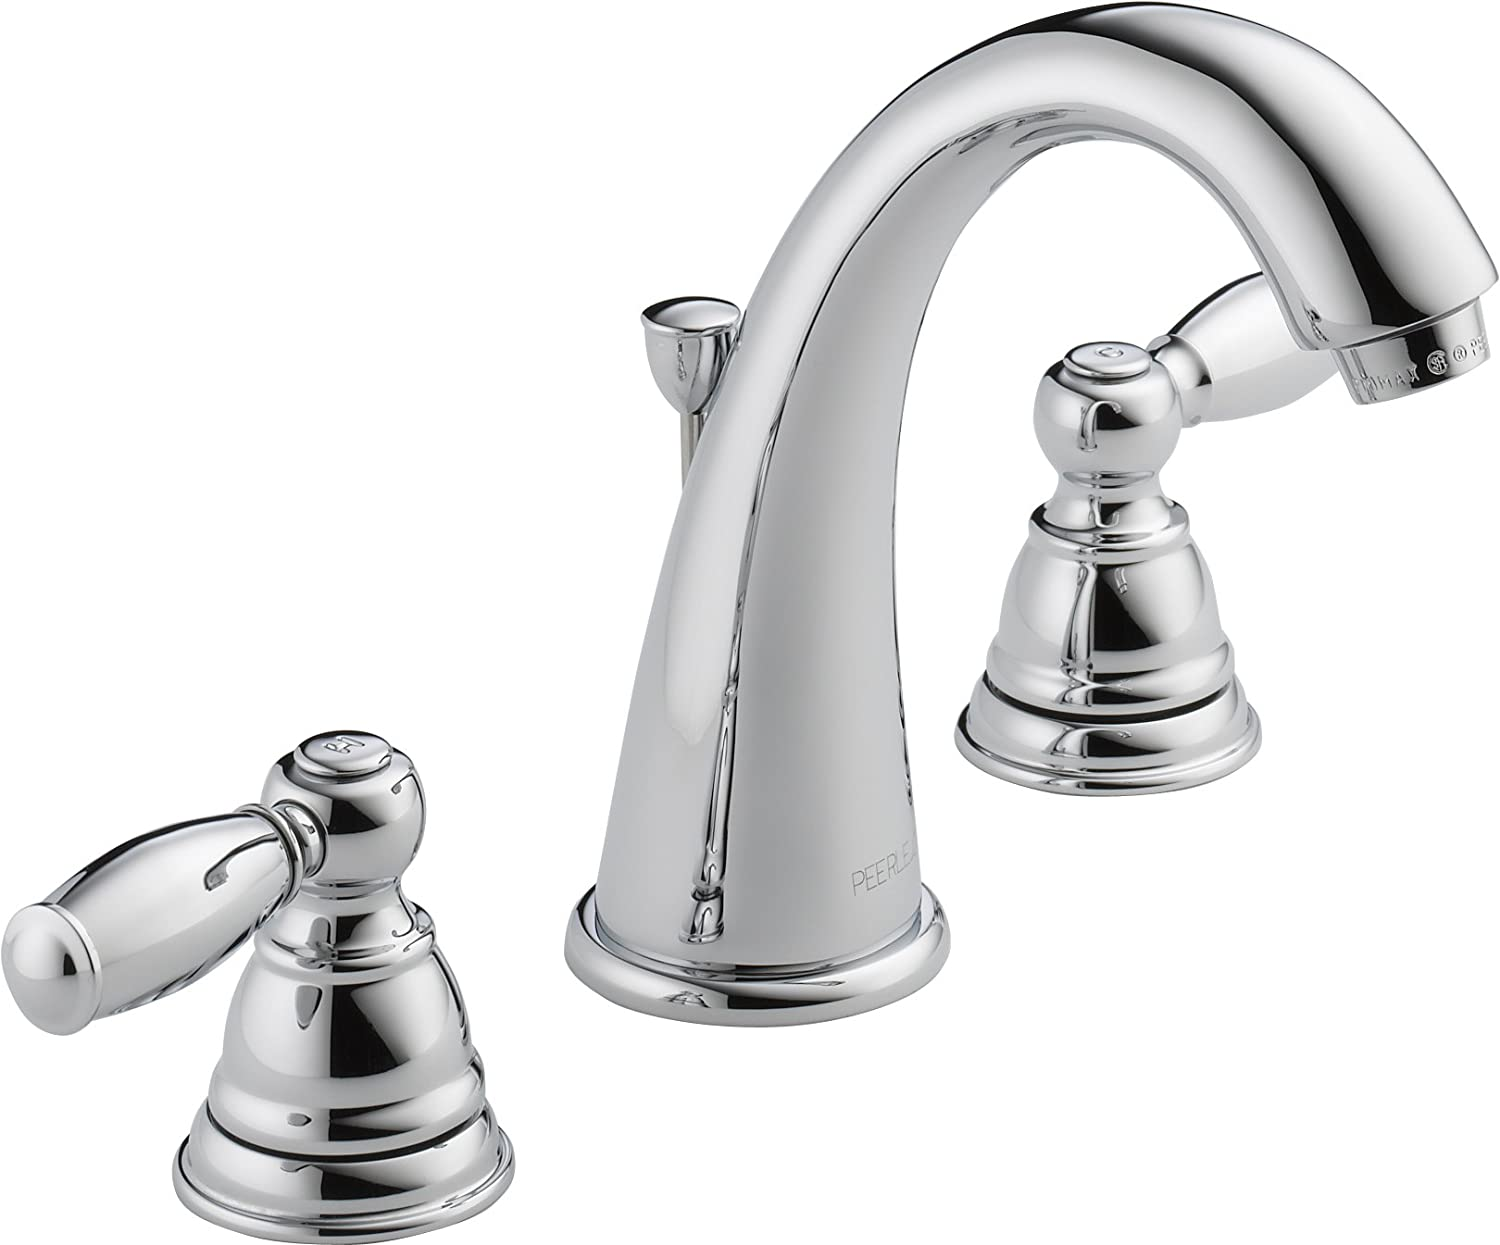 kitchen handle peerless faucets two faucet shower tunbridge